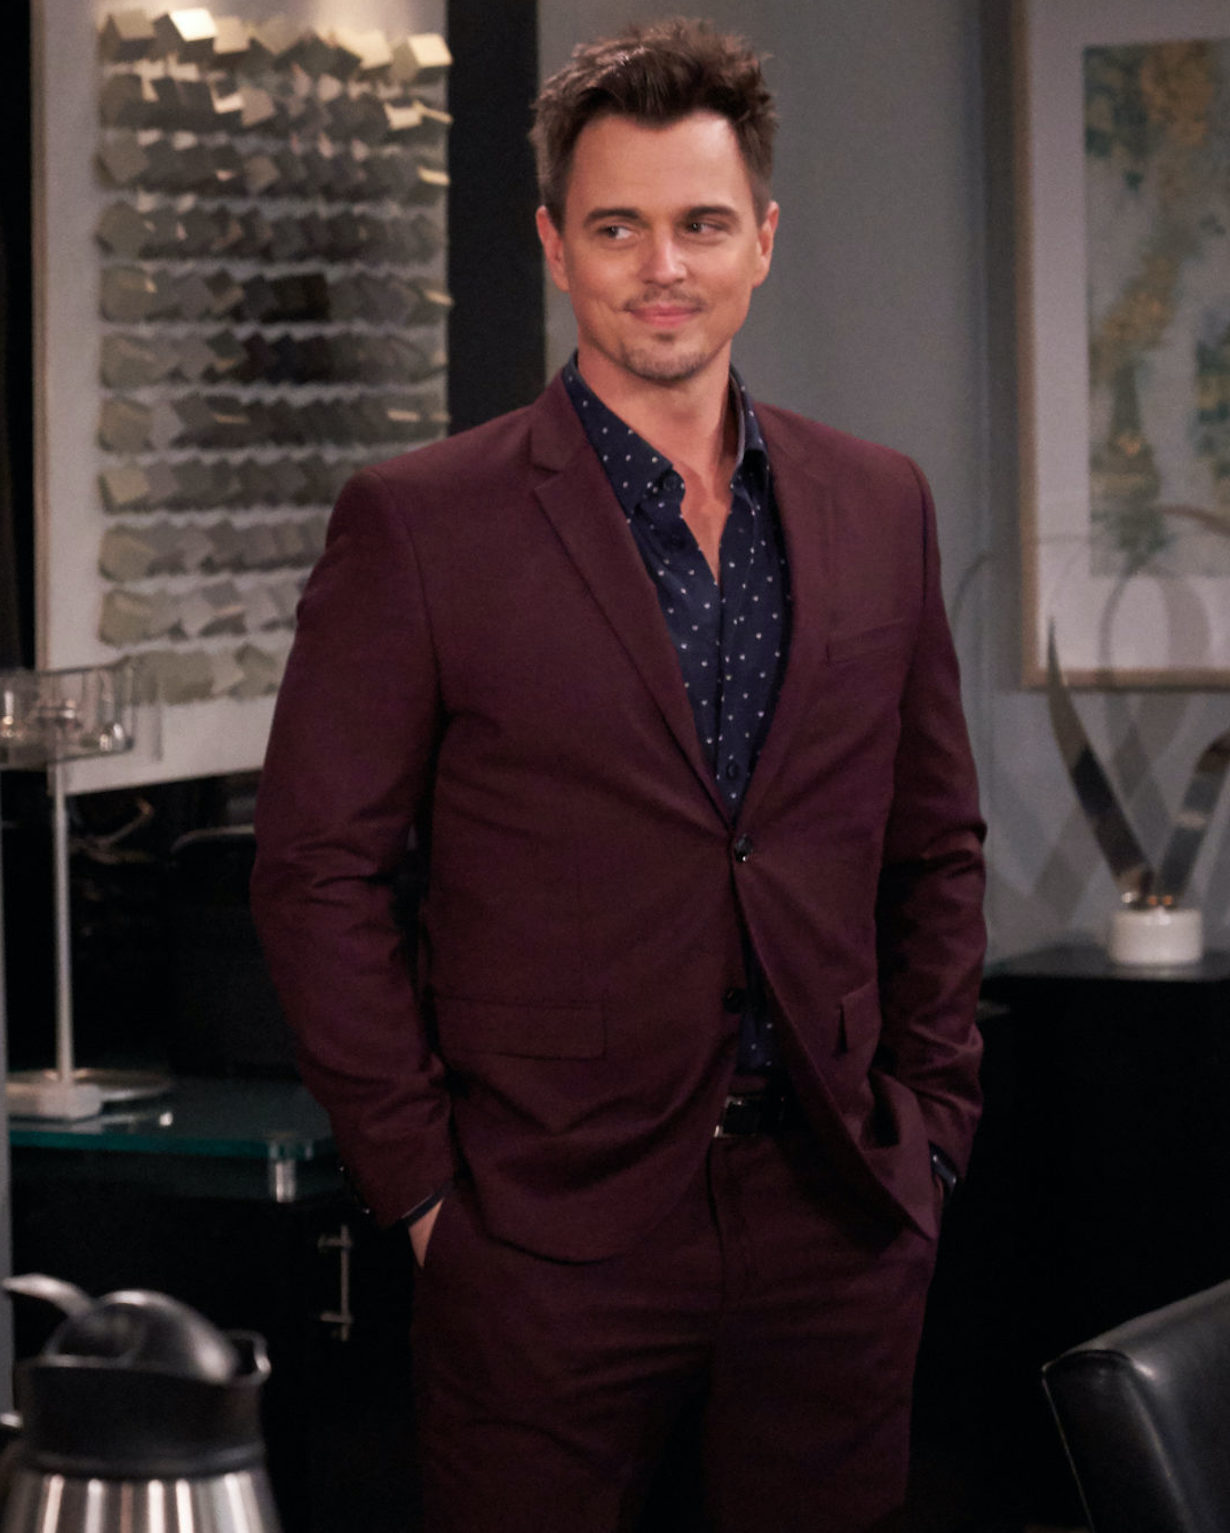 Darin Brooks THE BOLD AND THE BEAUTIFUL crossover episodes 8440 and 8441 airing on January 14 and January 18, 2021. ©Adam Torgerson/CBS Broadcasting, Inc. All Rights Reserved